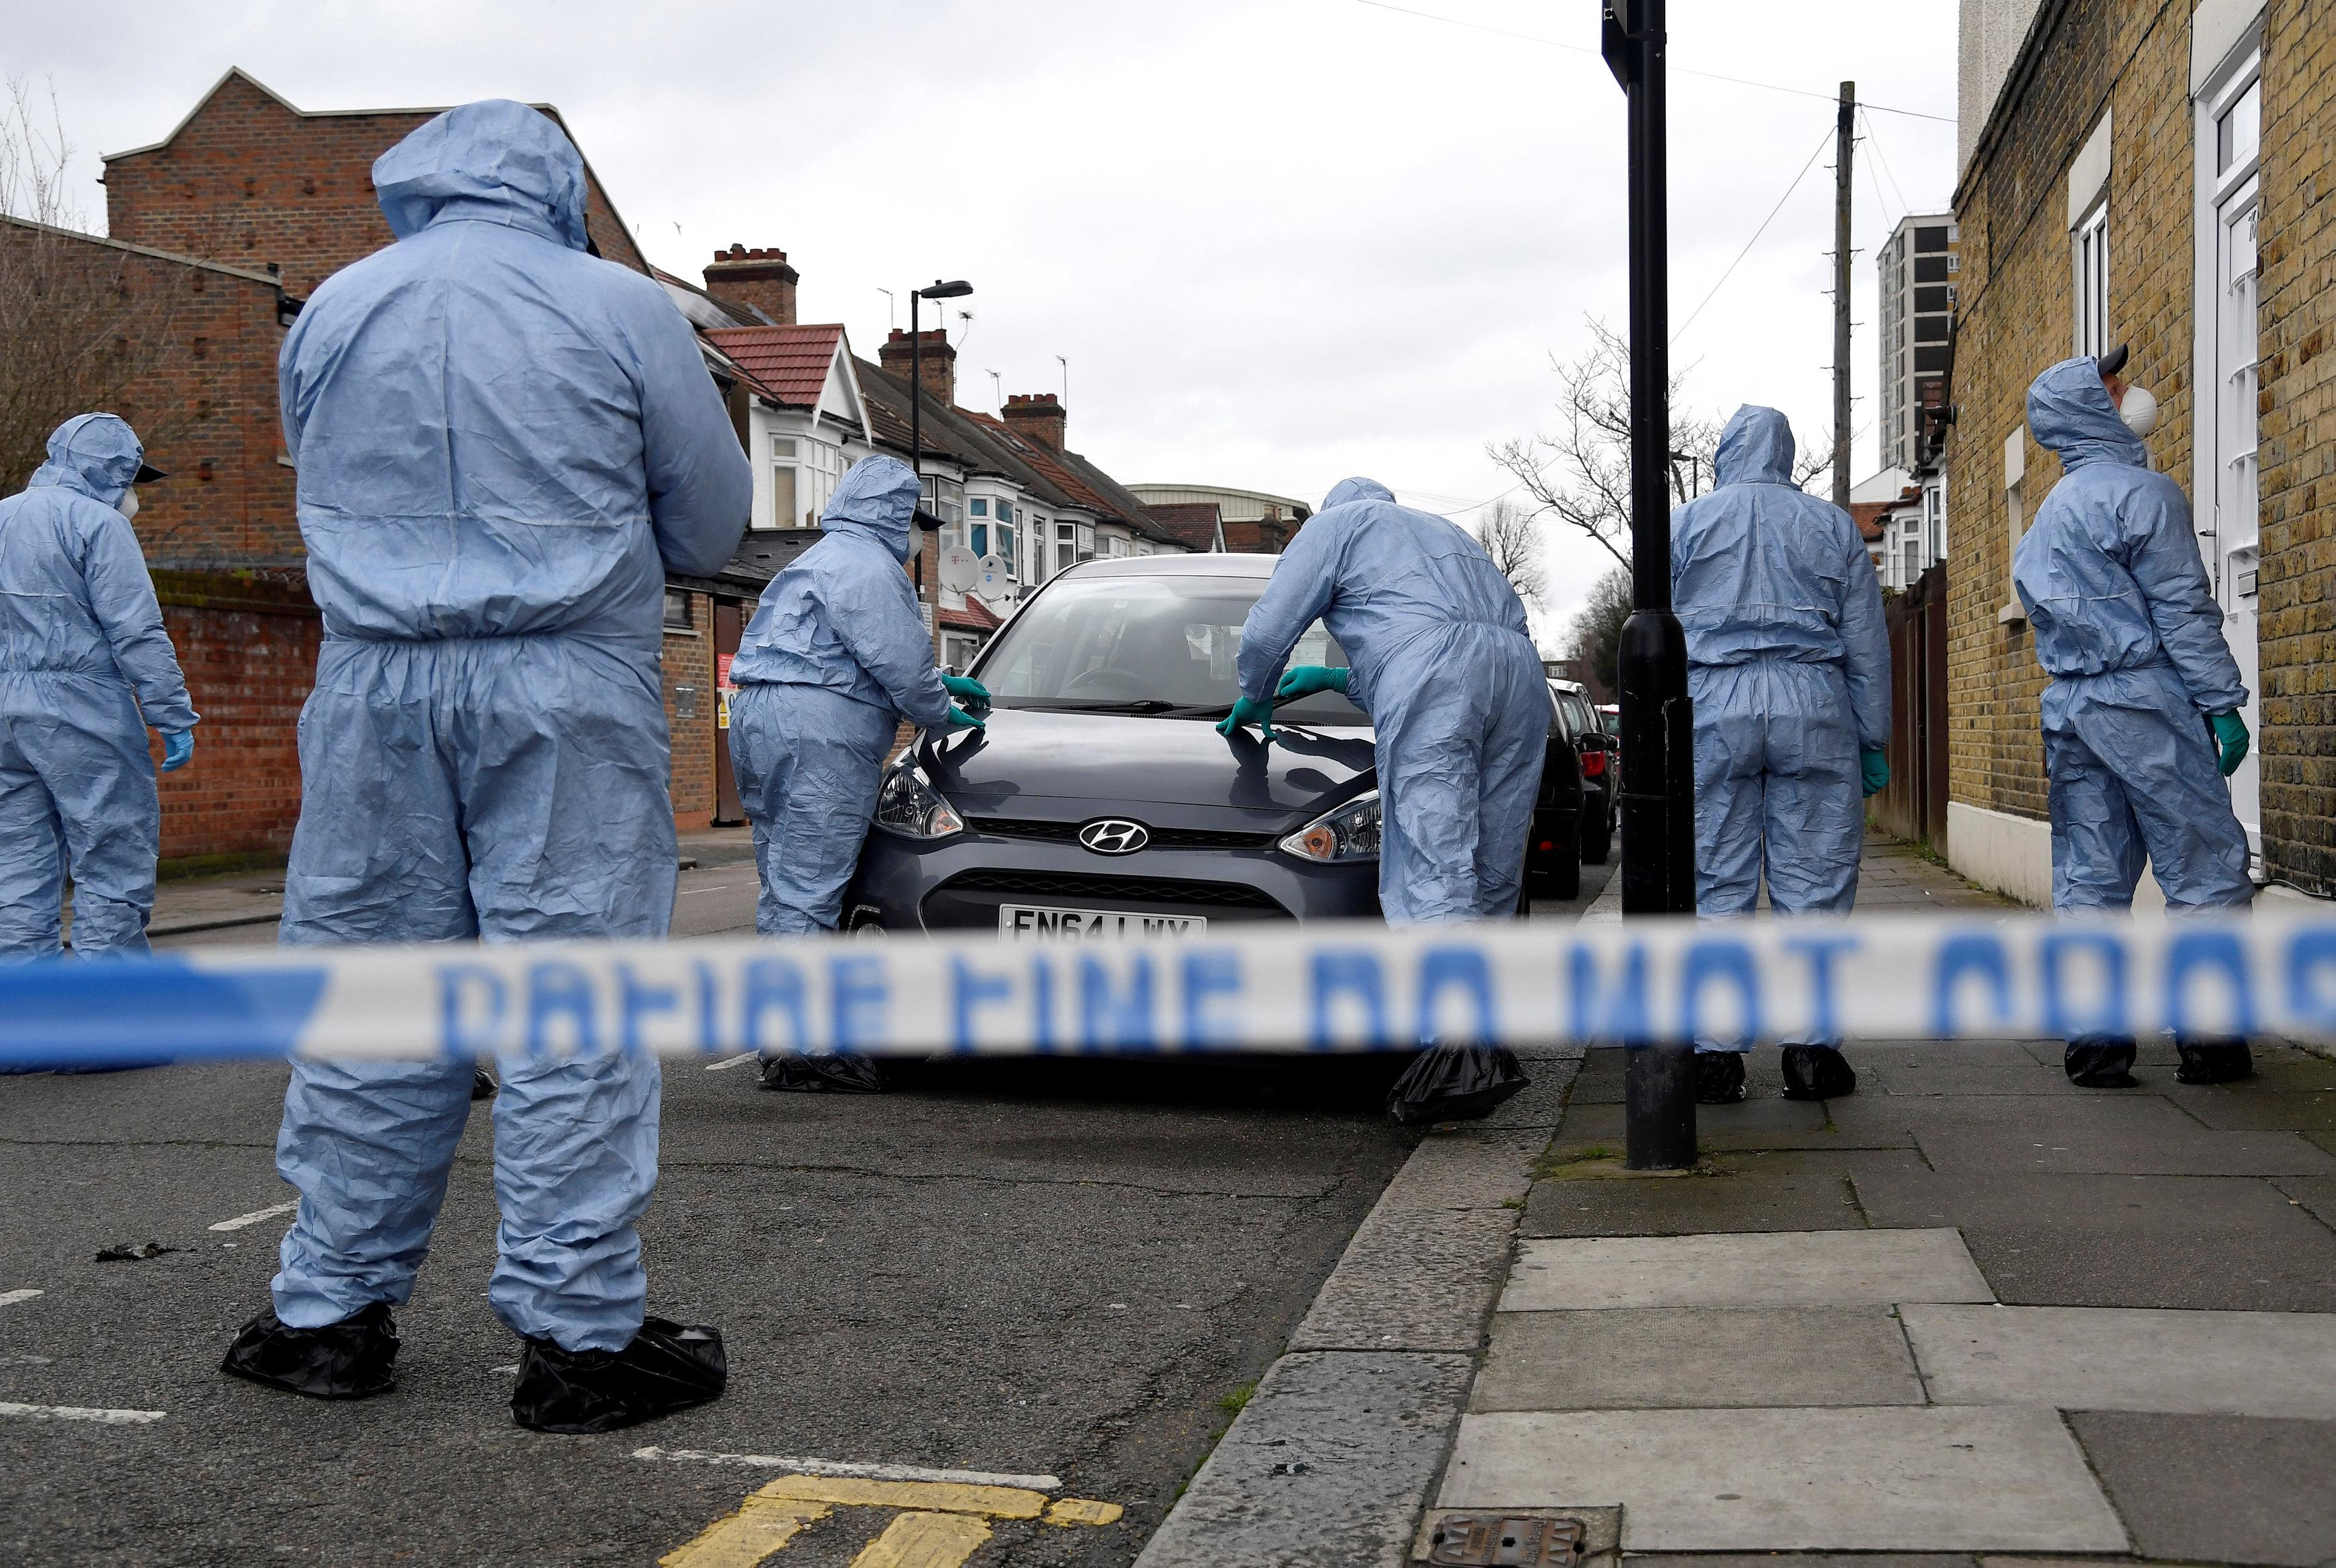 london murder rate overtakes new york as knife crime rises reuters